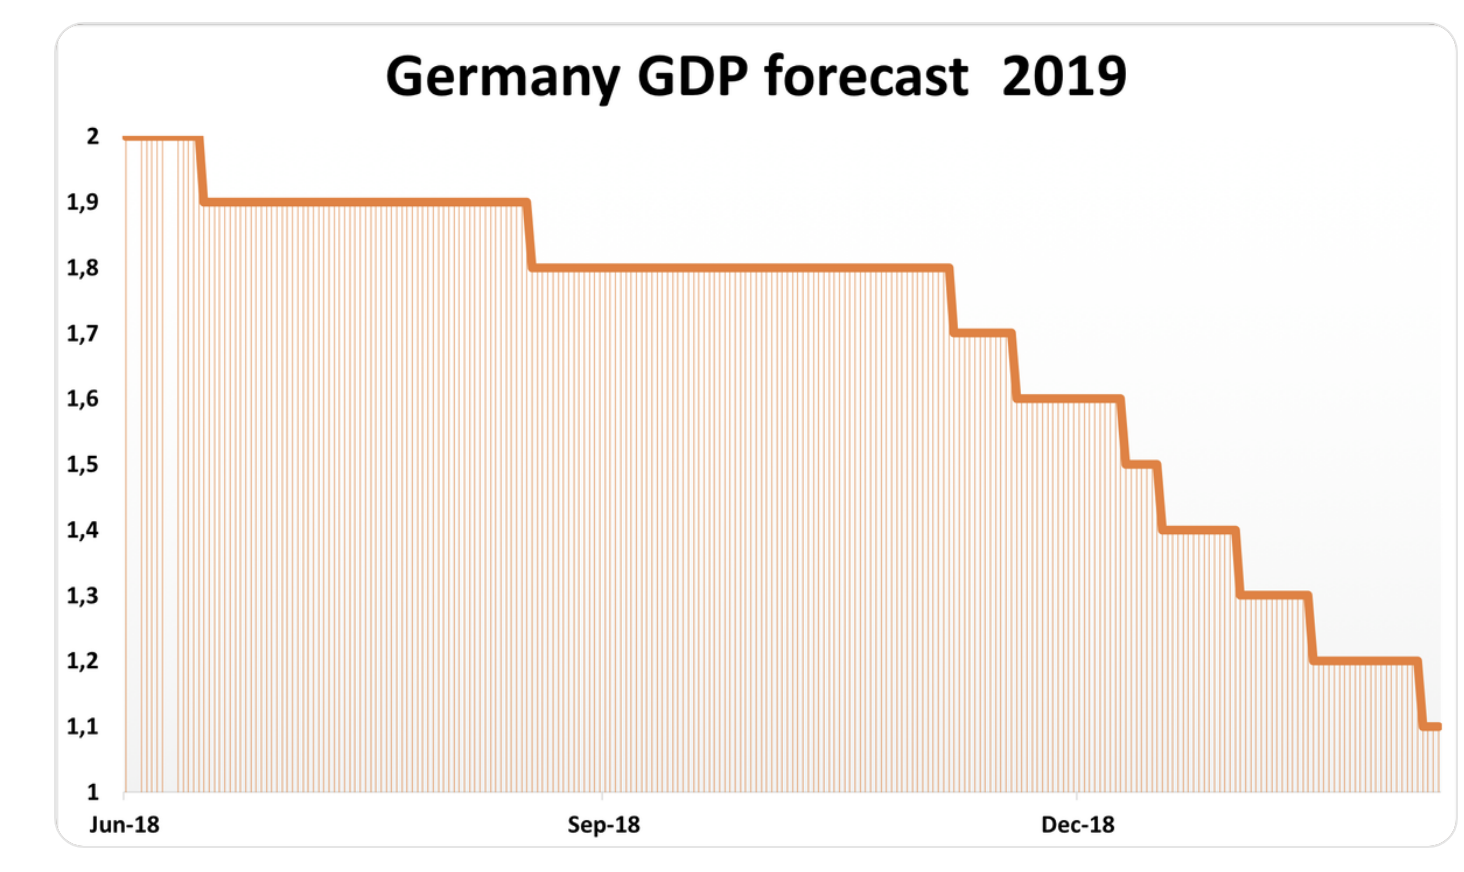 Germay GDP forecast 2019